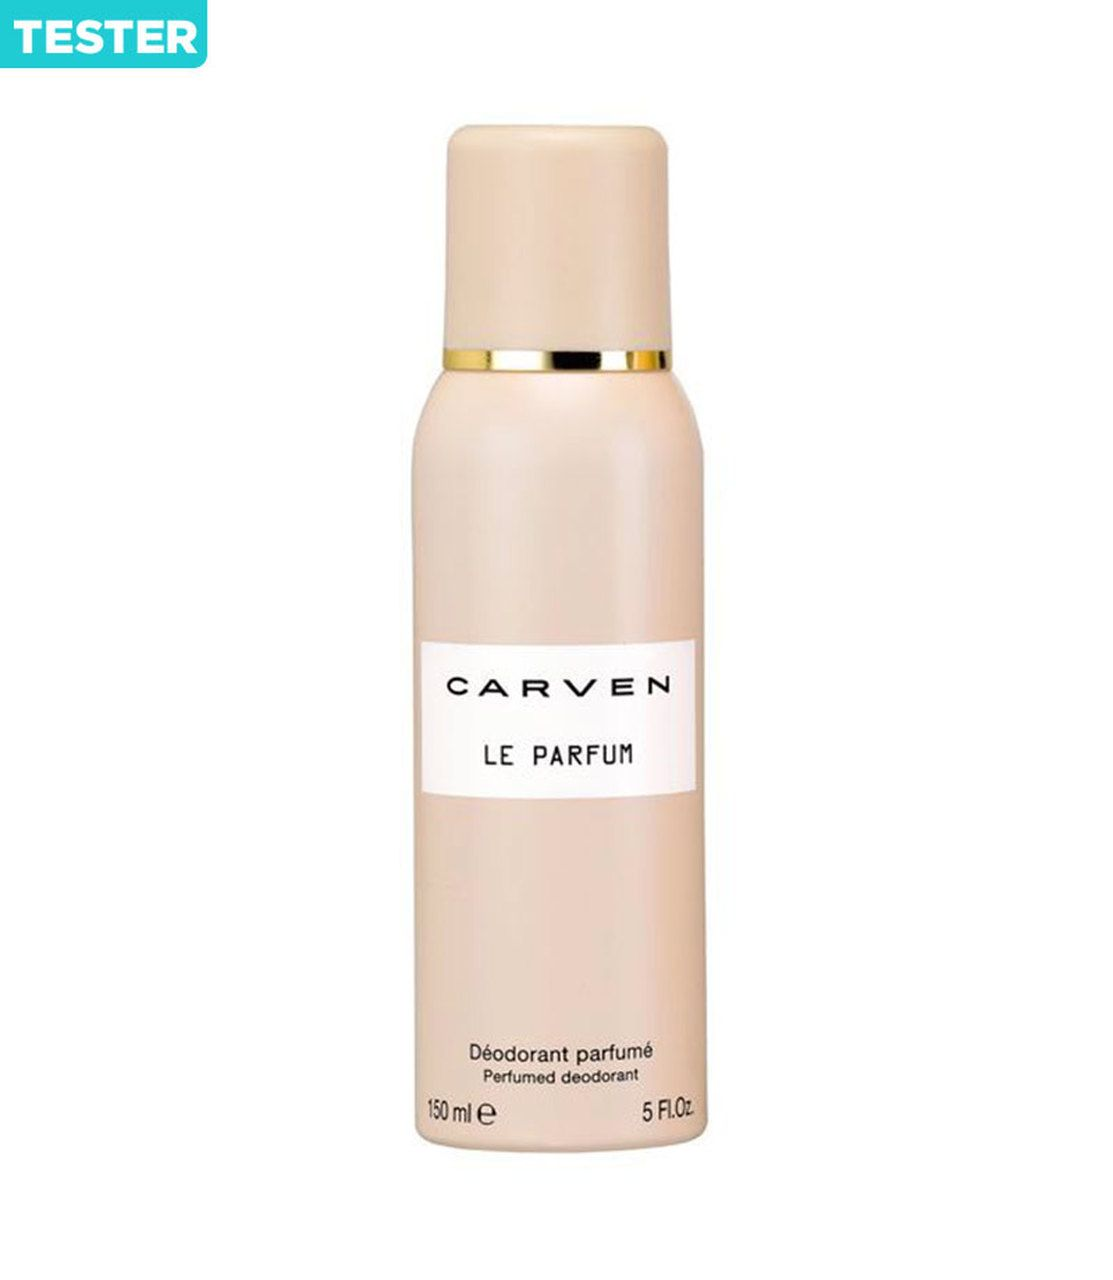 Photo of Carven Le Parfum Deodorant Spray 5 oz Tester